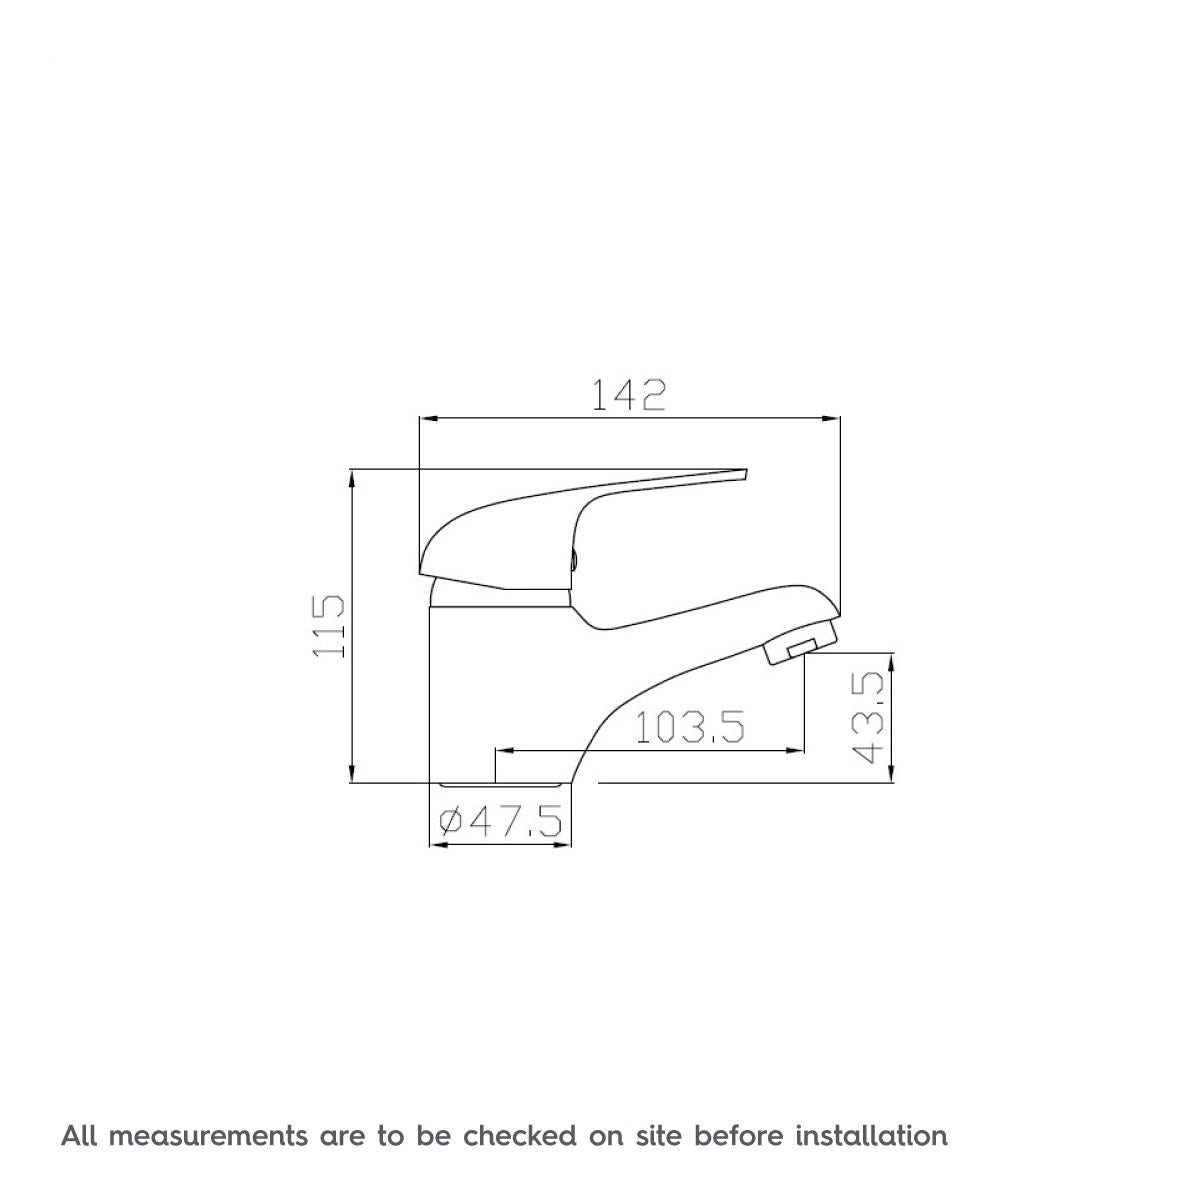 Dimensions for Clarity single lever basin mixer tap